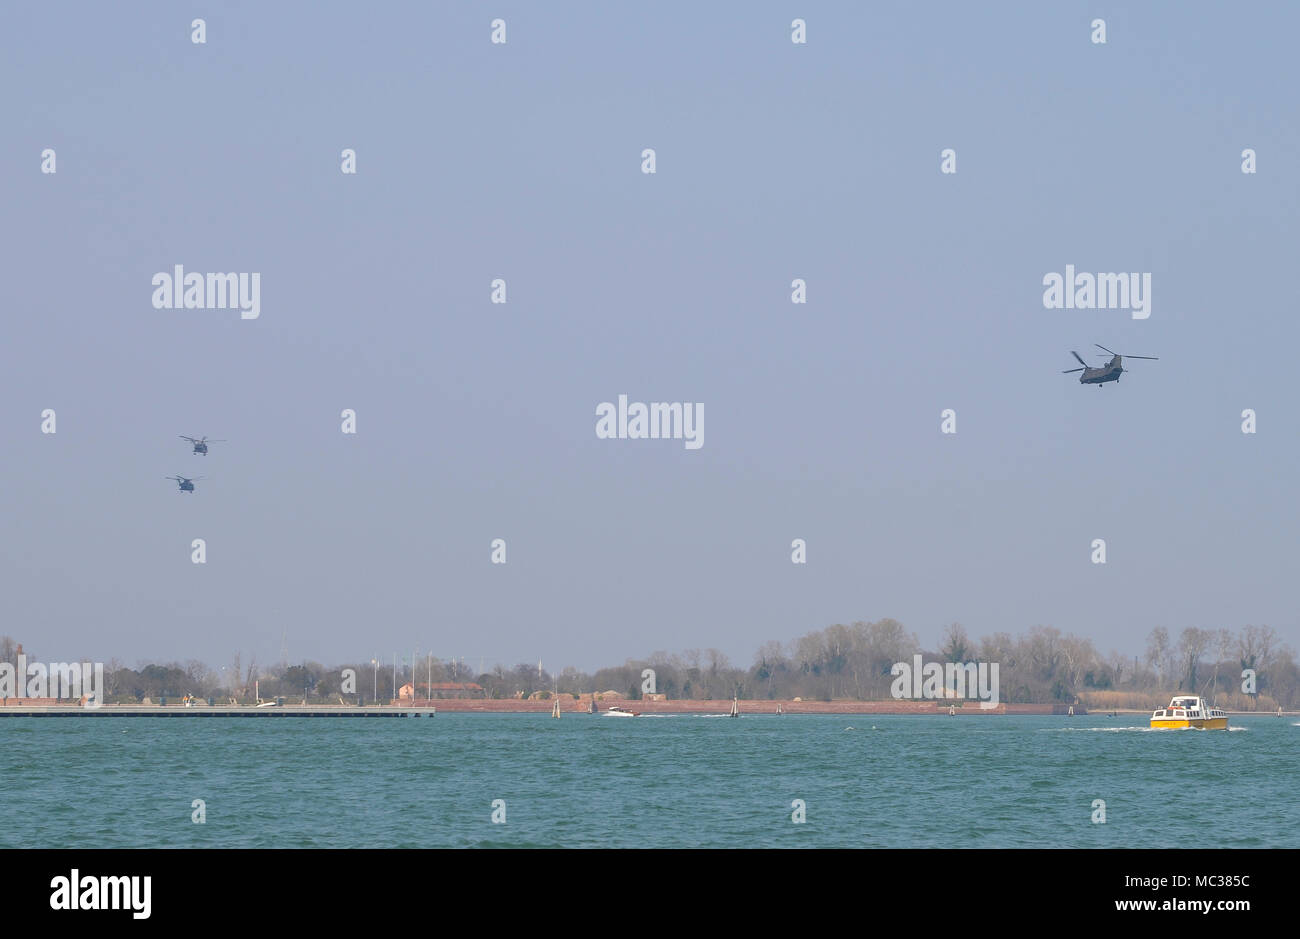 Military Helicopters in formation over the Venetian lagoon heading towards Aviano Air Base in Northeastern Italy. - Stock Image